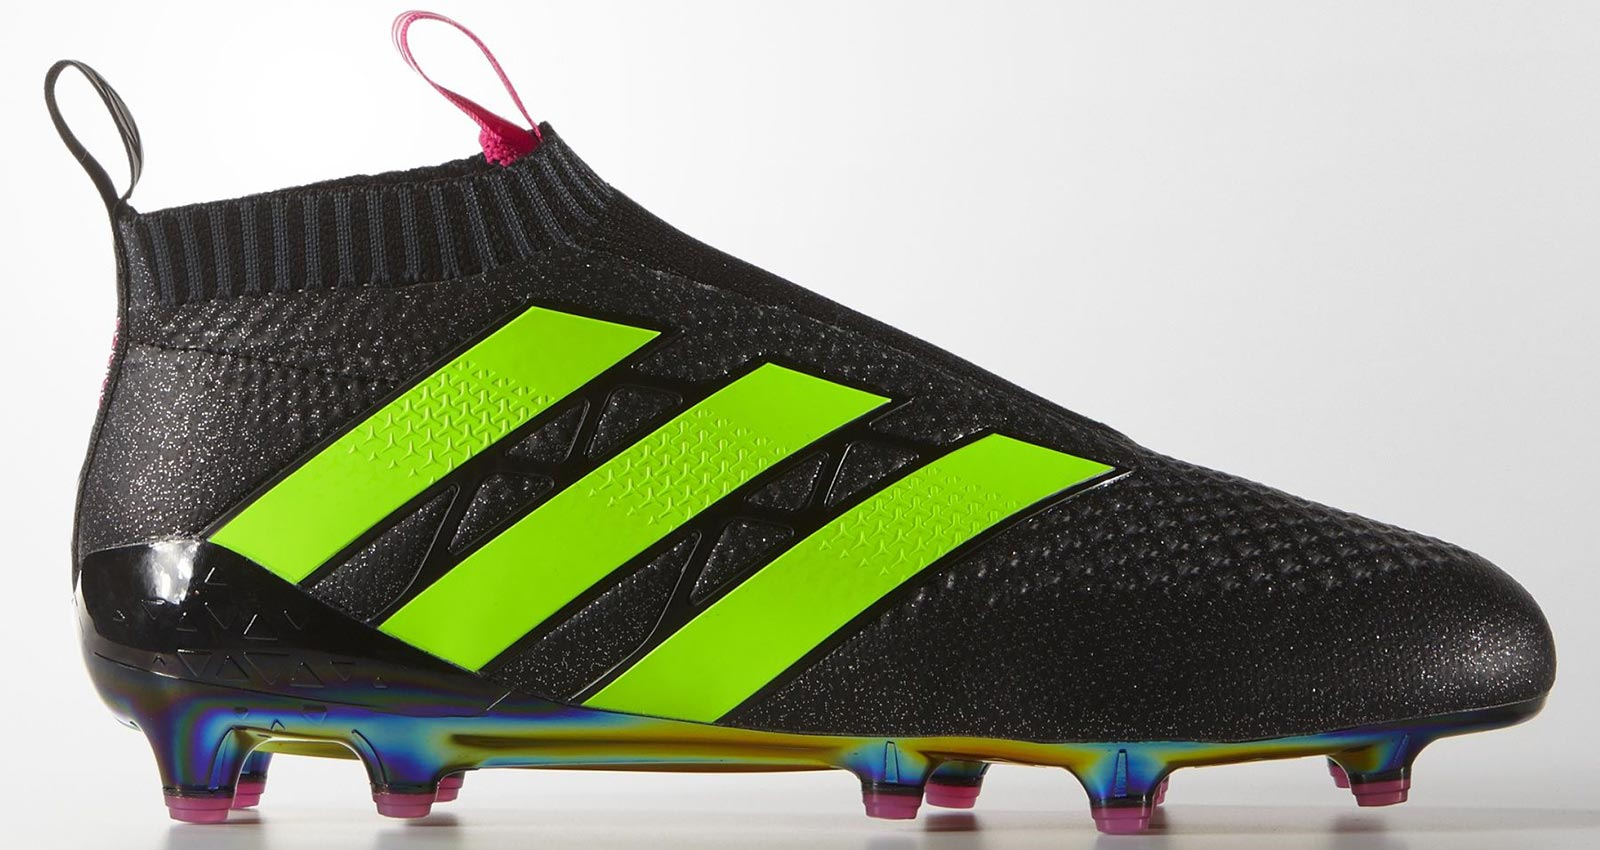 a0773468f956 It was extremely hard to get the first colorways of Adidas' laceless boots,  due to the high popularity and the limited numbers available of the cleats.